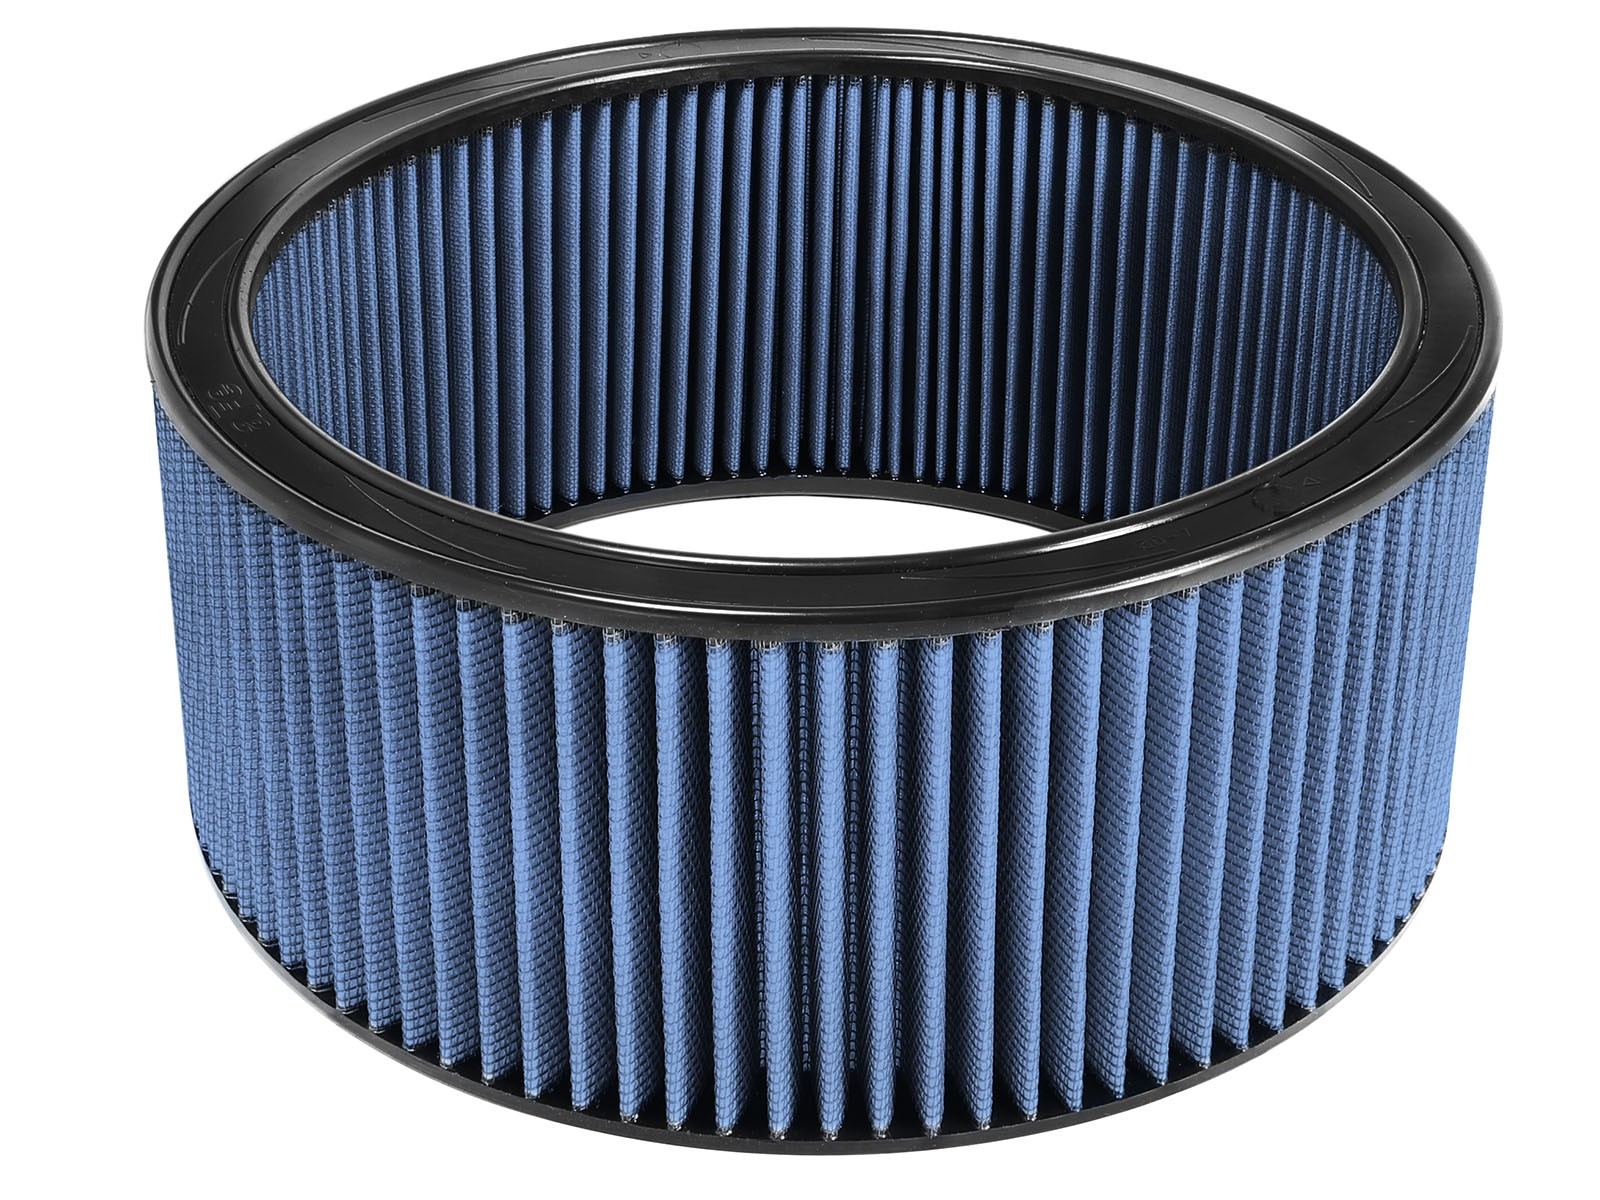 aFe POWER 10-10015 Magnum FLOW Pro 5R Air Filter